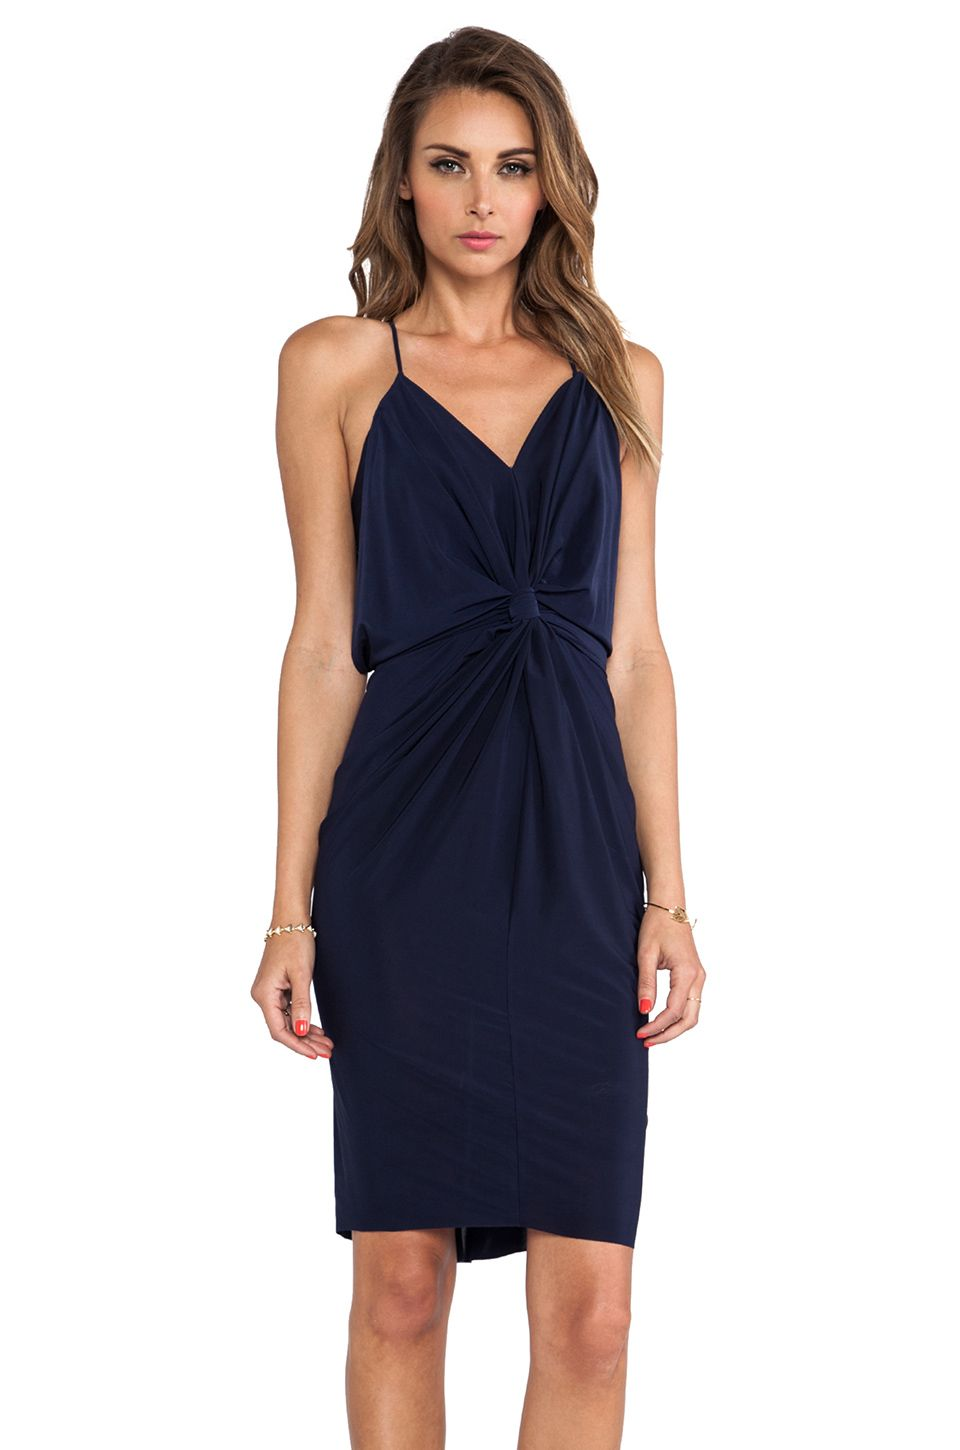 T Bags Losangeles Knot Front Knee Length Dress In Navy Revolve